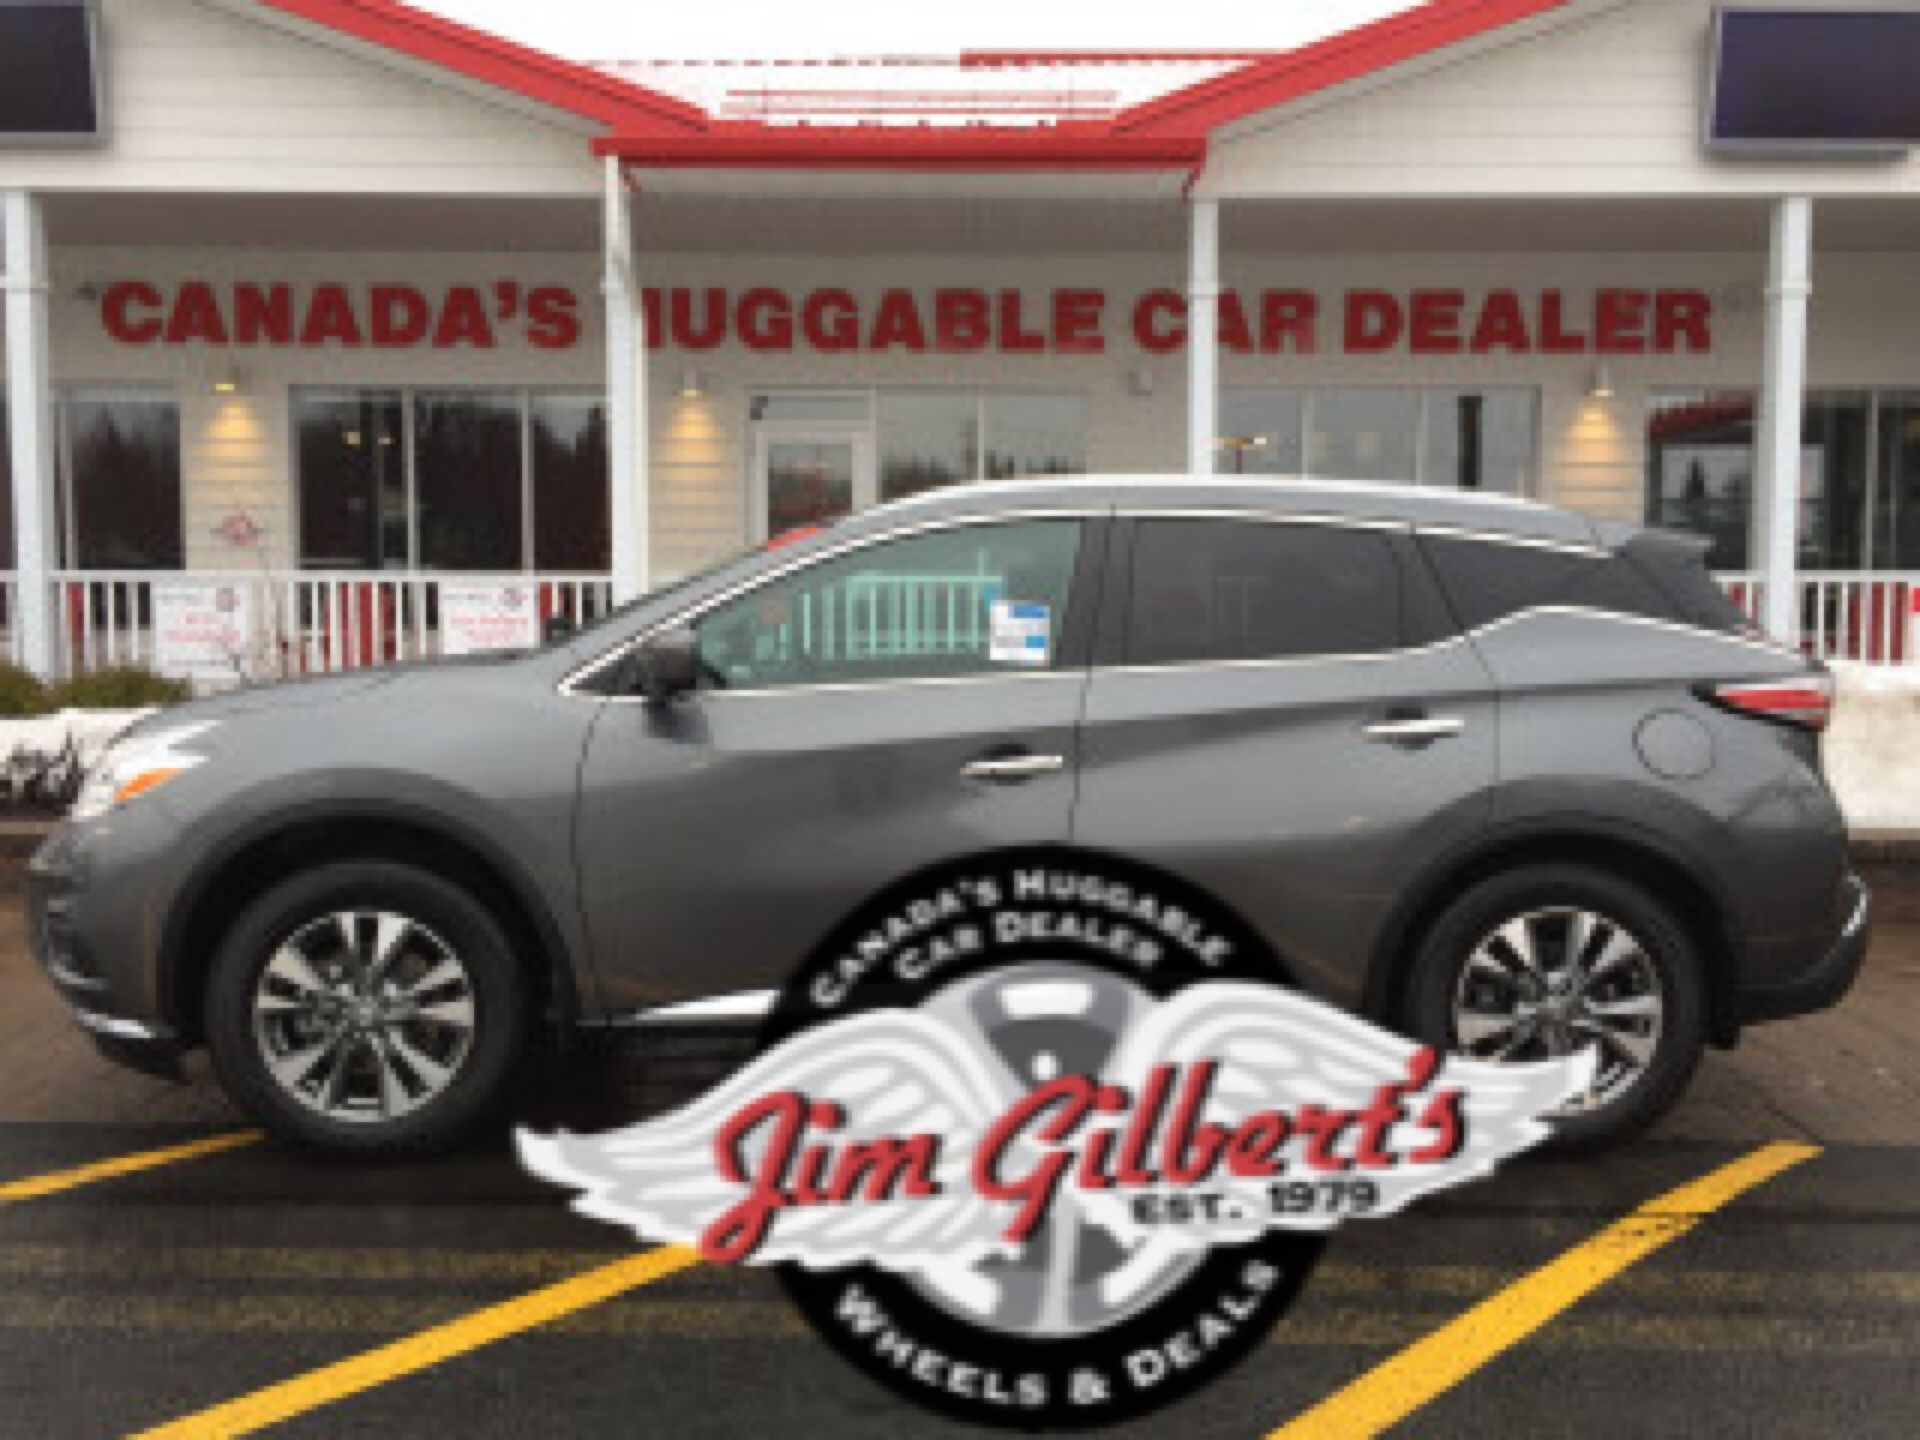 Jim Gilberts Wheels And Deals Cars for sale used, Used